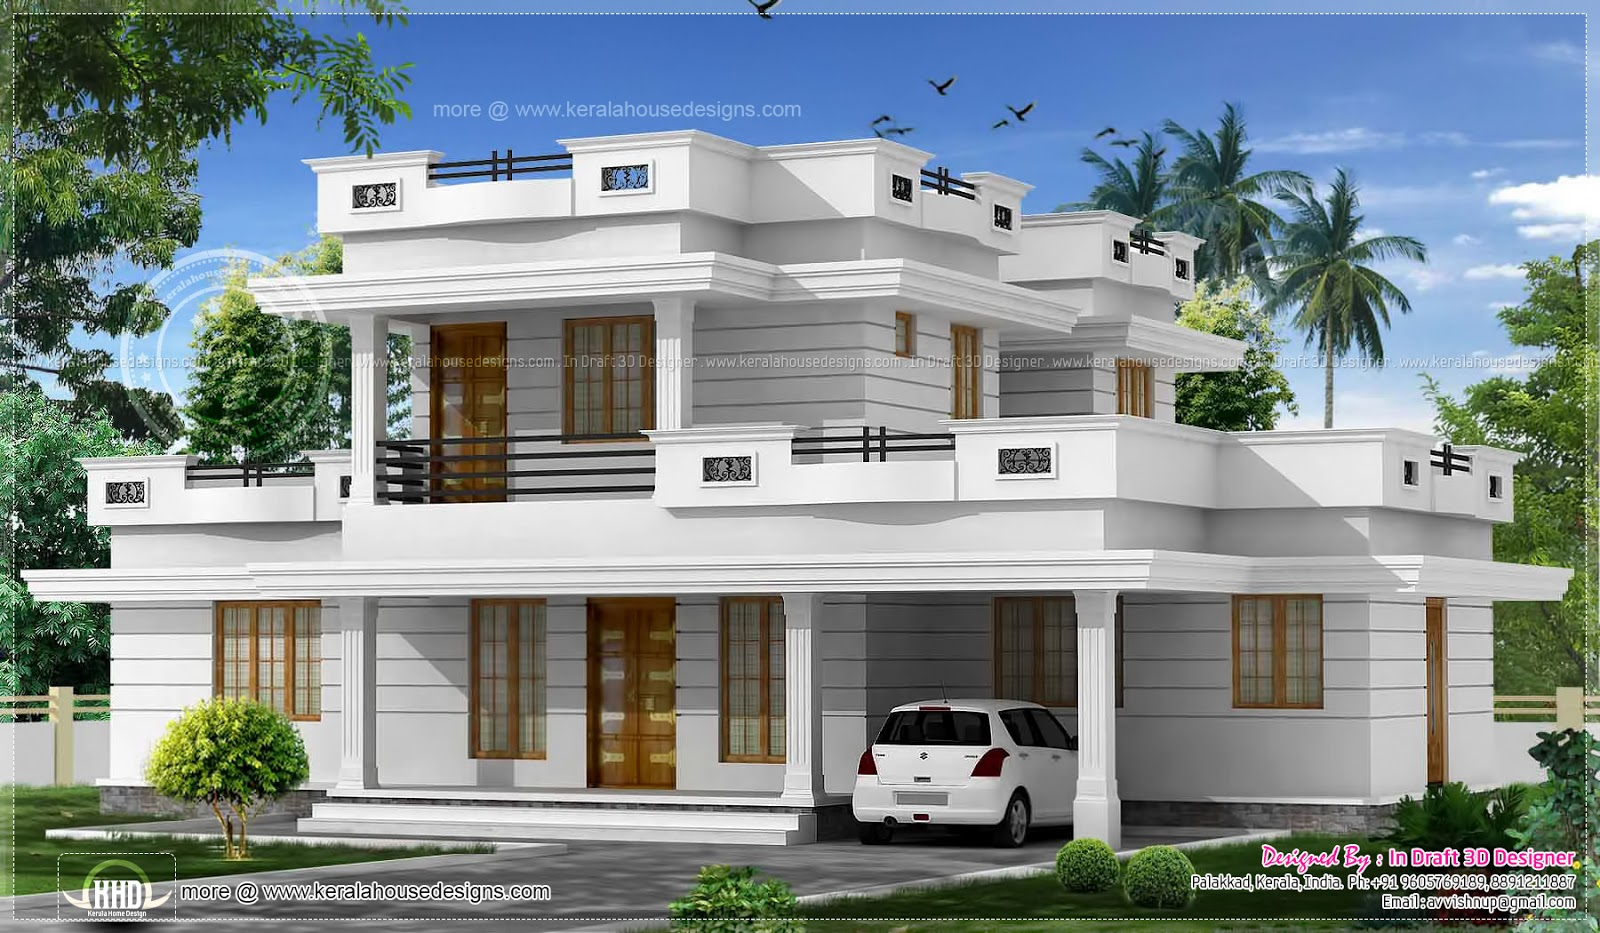 Roof Design Ideas: 3 Bed Room Flat Roof Villa With Courtyard 2172 Sq-ft